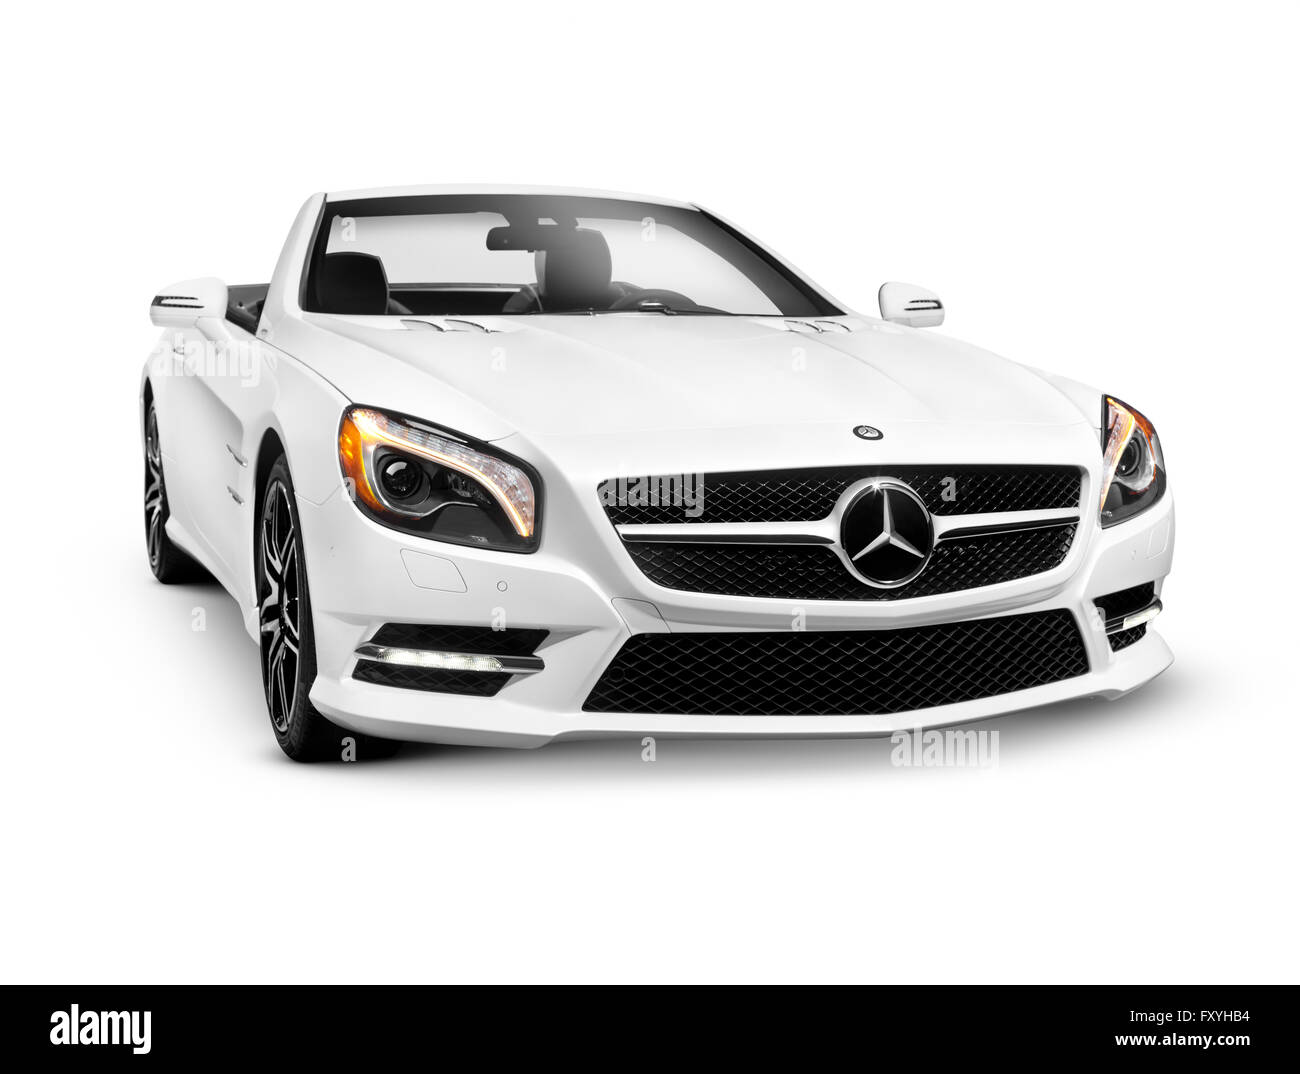 White Mercedes Convertible Car High Resolution Stock Photography And Images Alamy